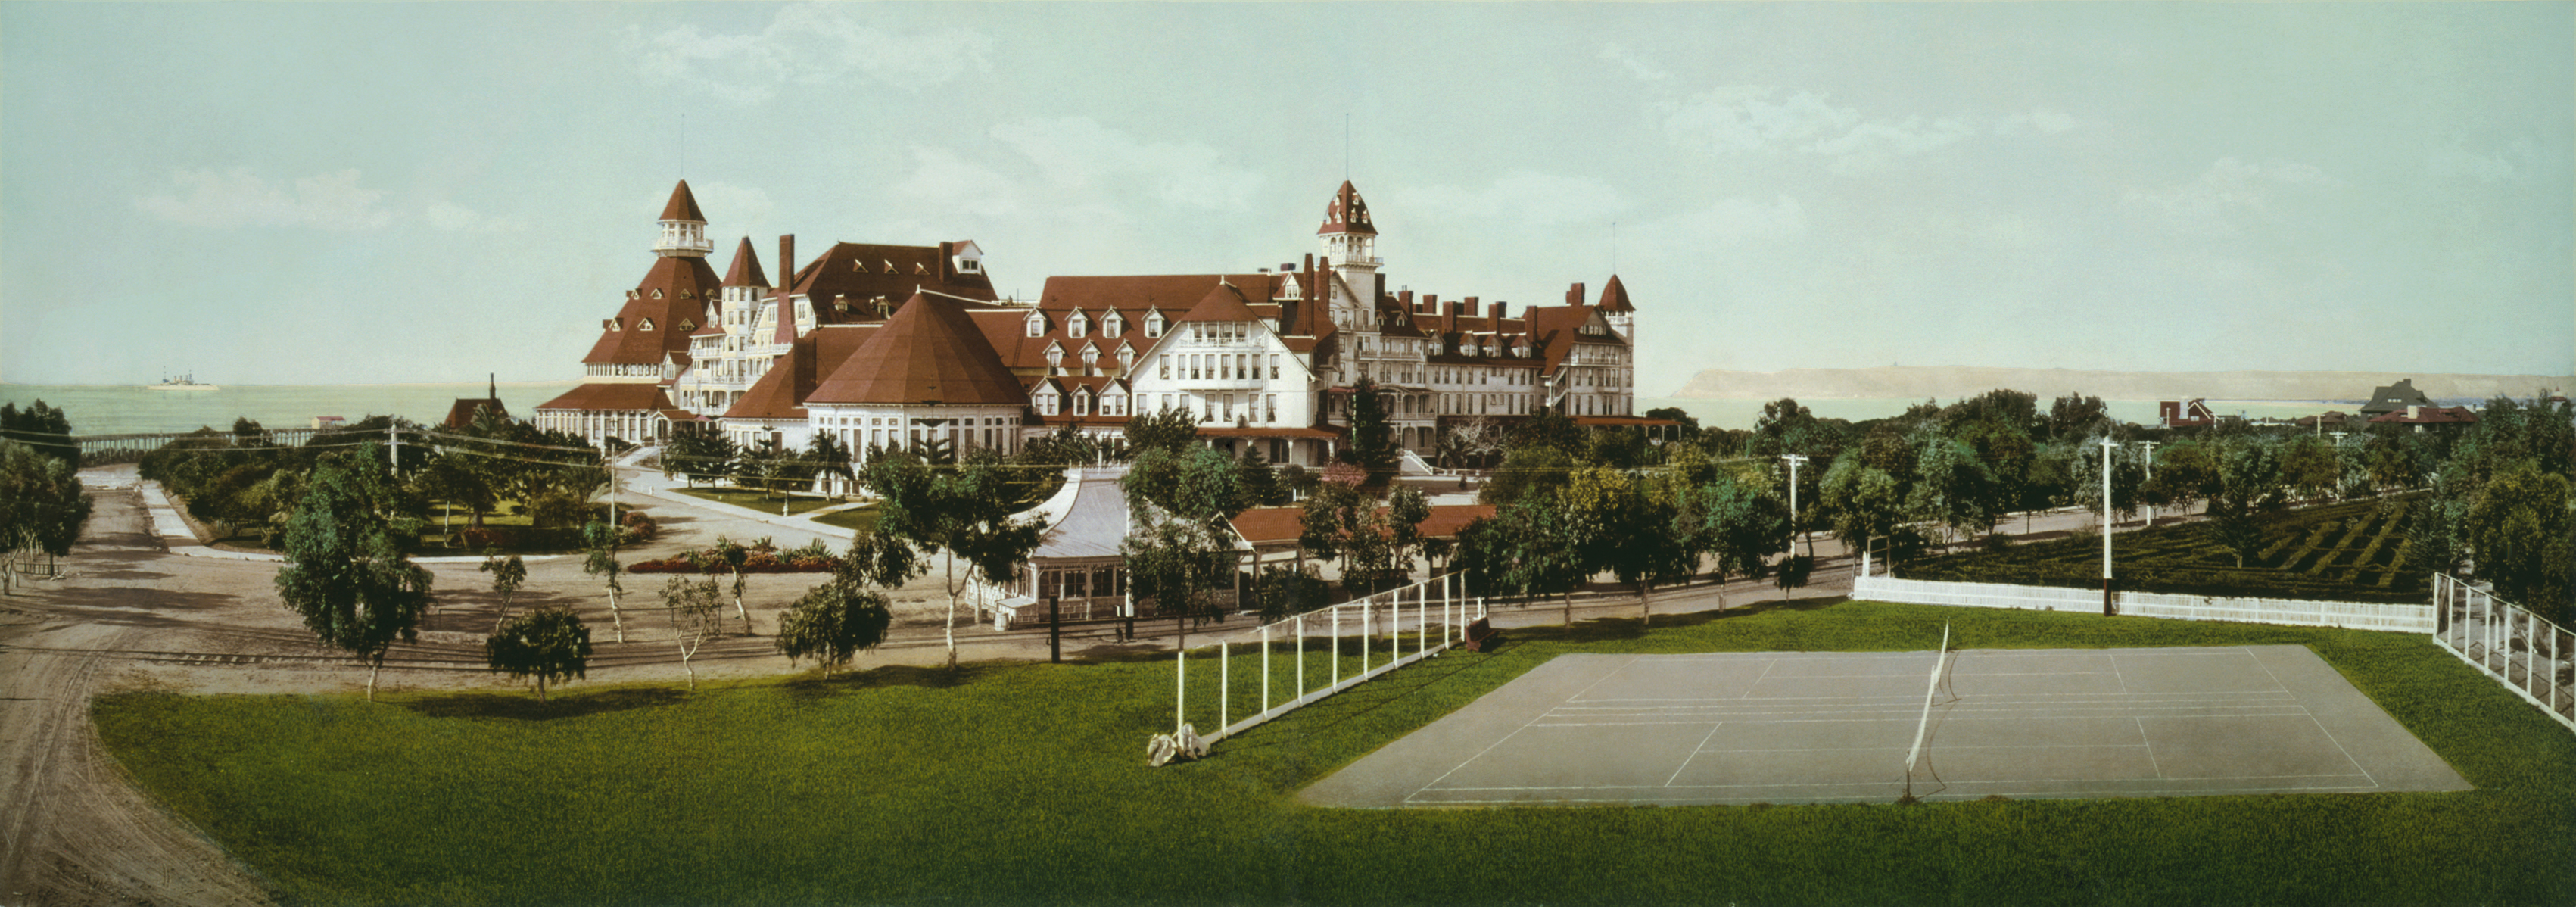 Hotel del coronado high HD Wallpaper